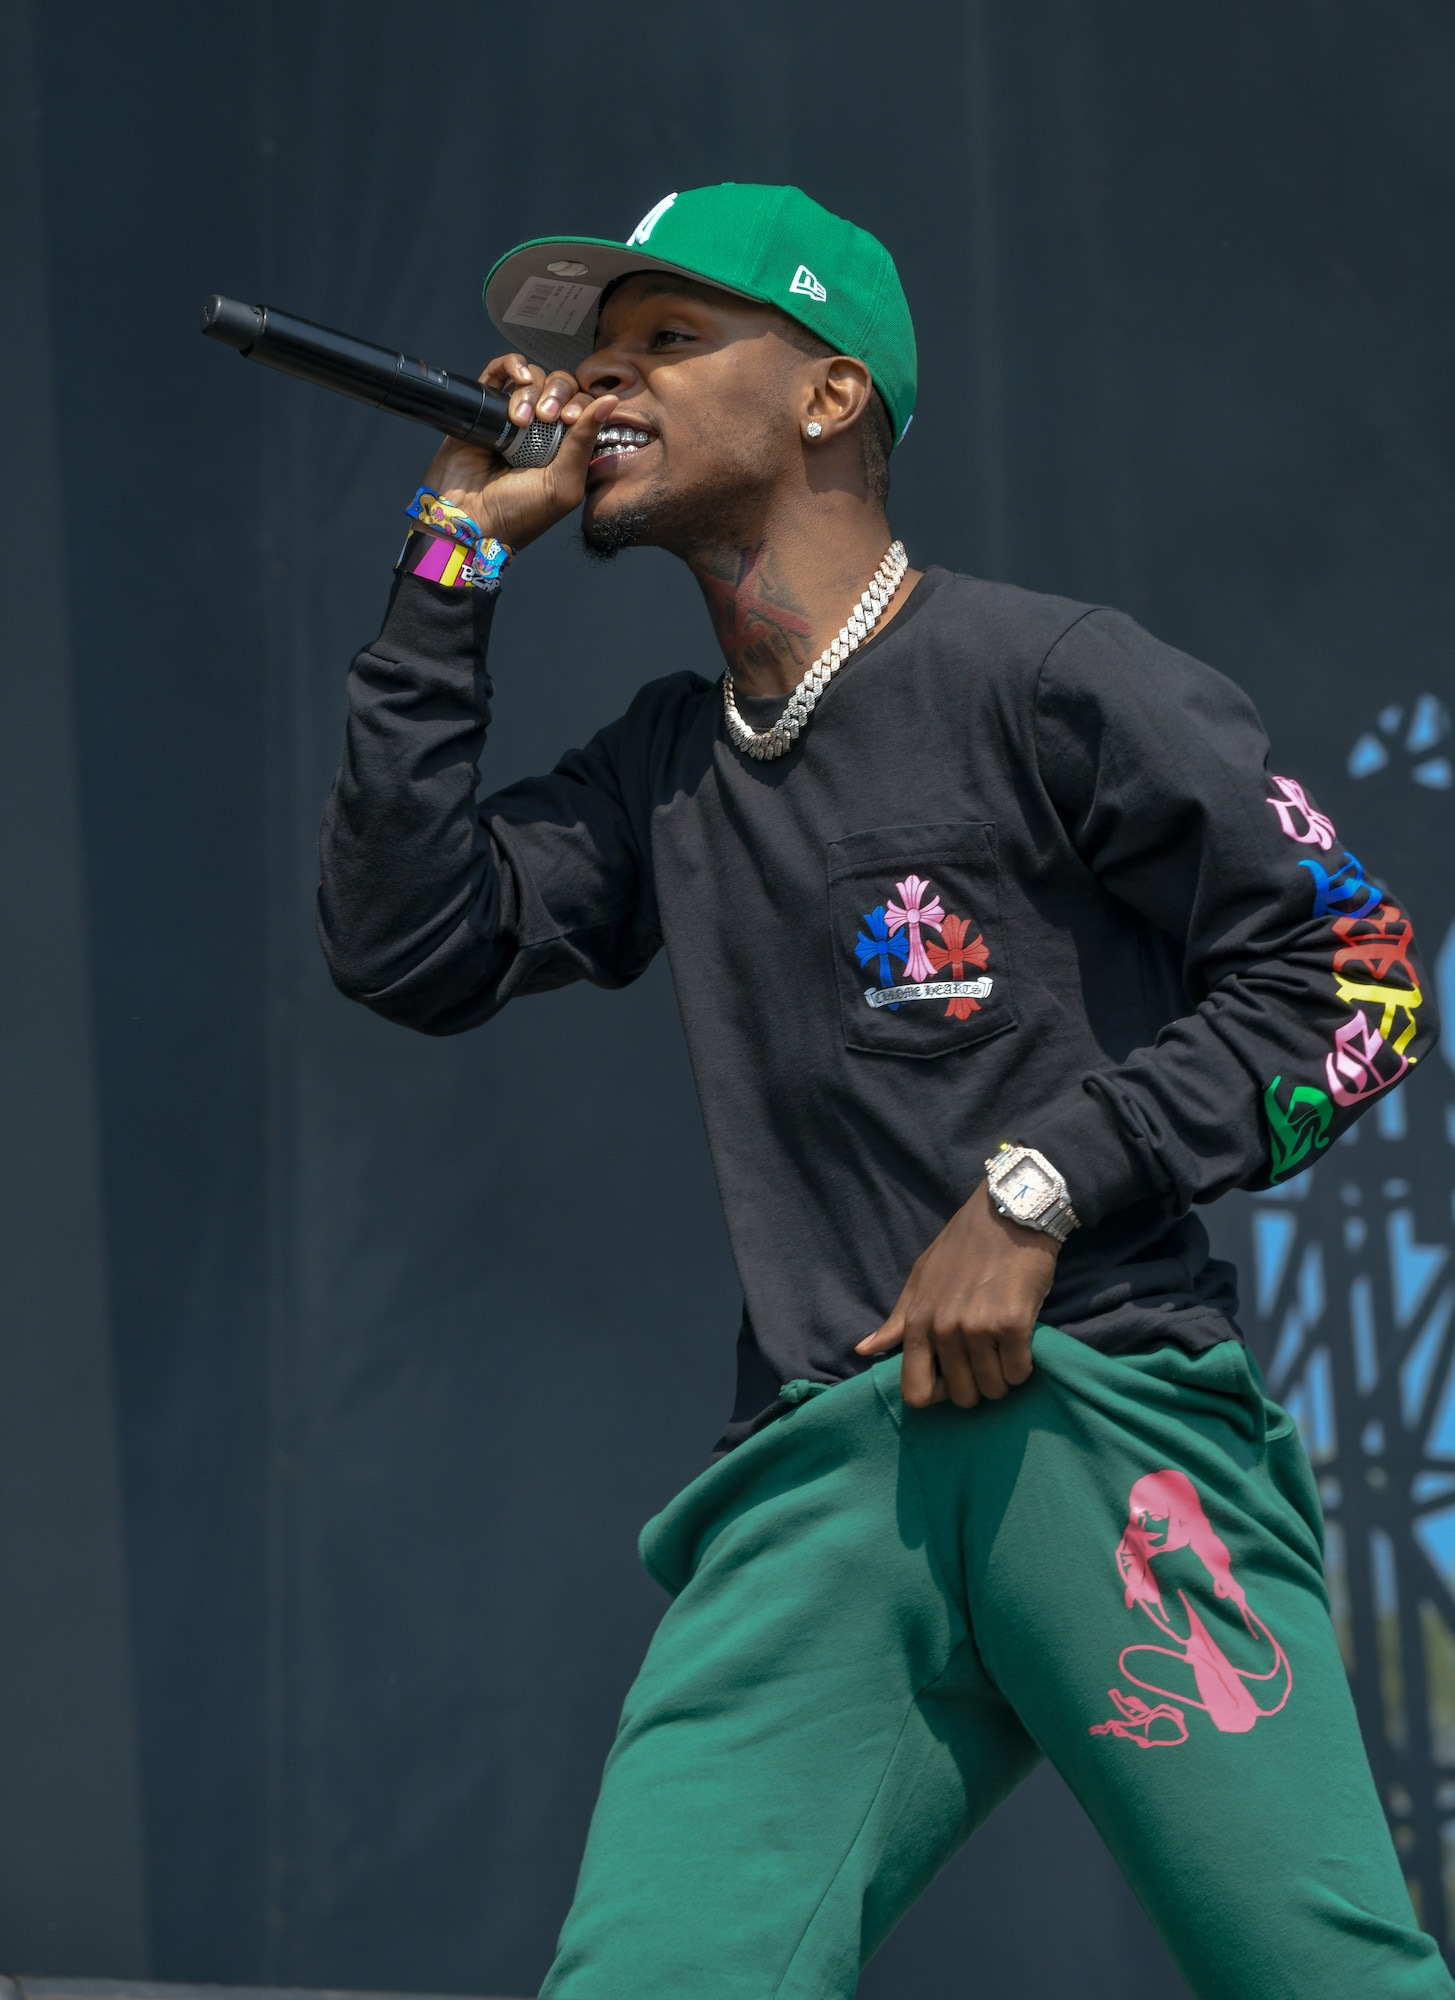 Toosii Live at Lollapalooza [GALLERY] 8